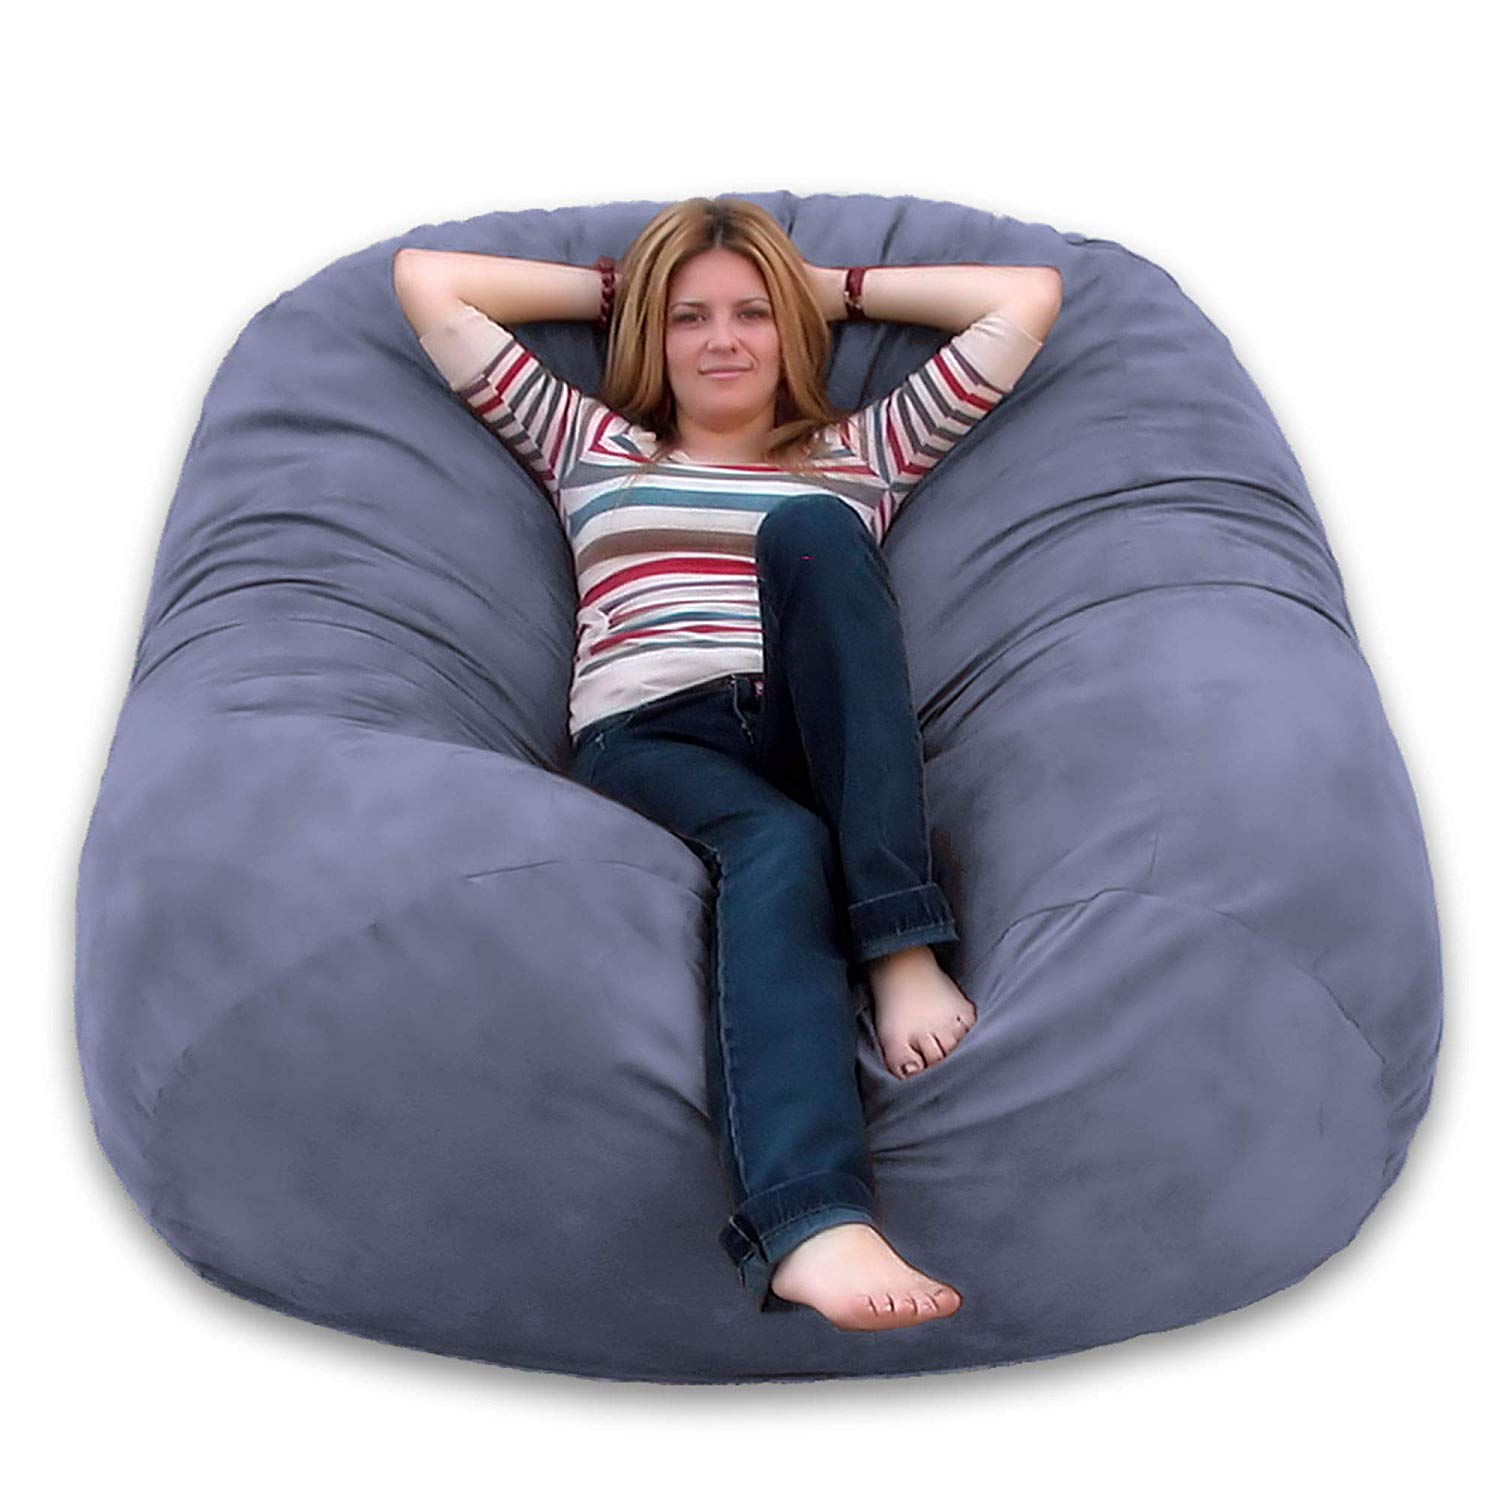 Best Bean Bag Chairs For Adults In 2021 – The Double Check With Bean Bag Sofas And Chairs (Photo 4 of 15)